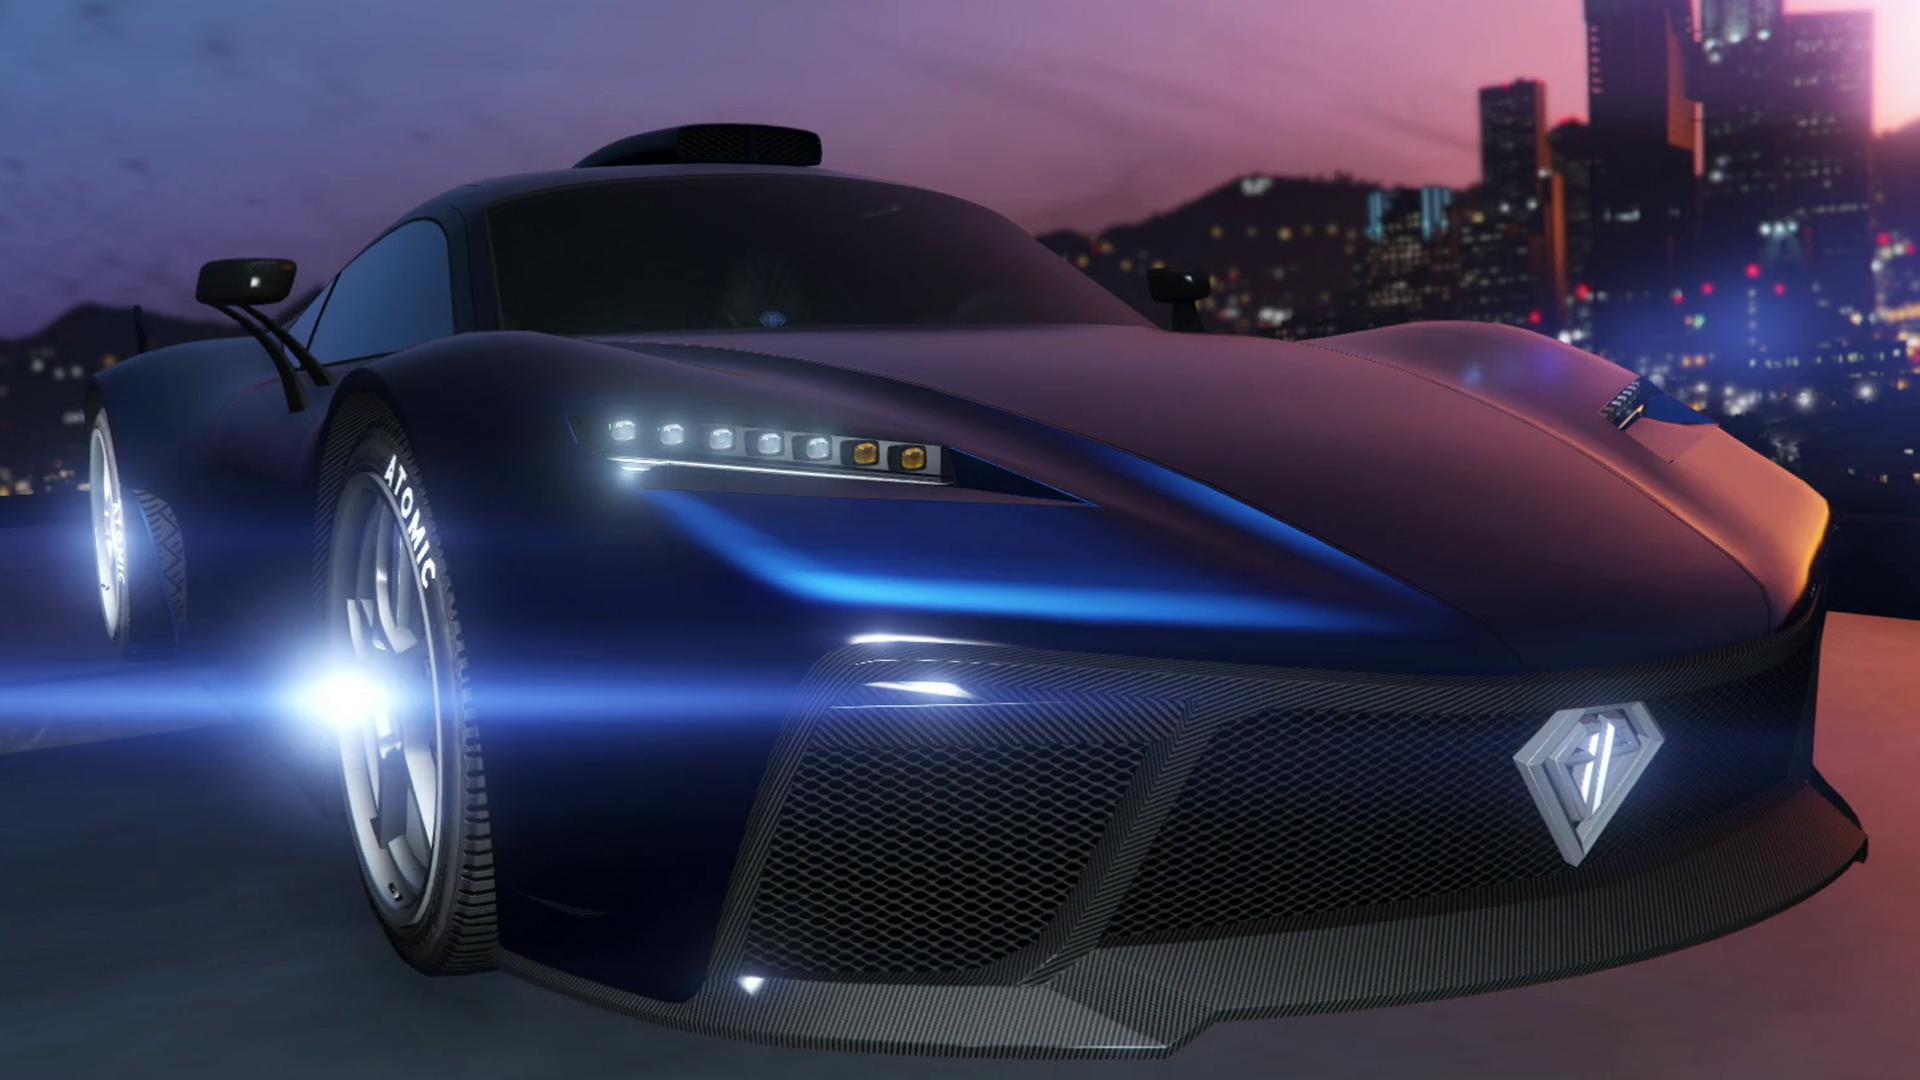 Other Things You Could Buy With The $2.875 Million It Costs To Get The Newest GTA Online Car